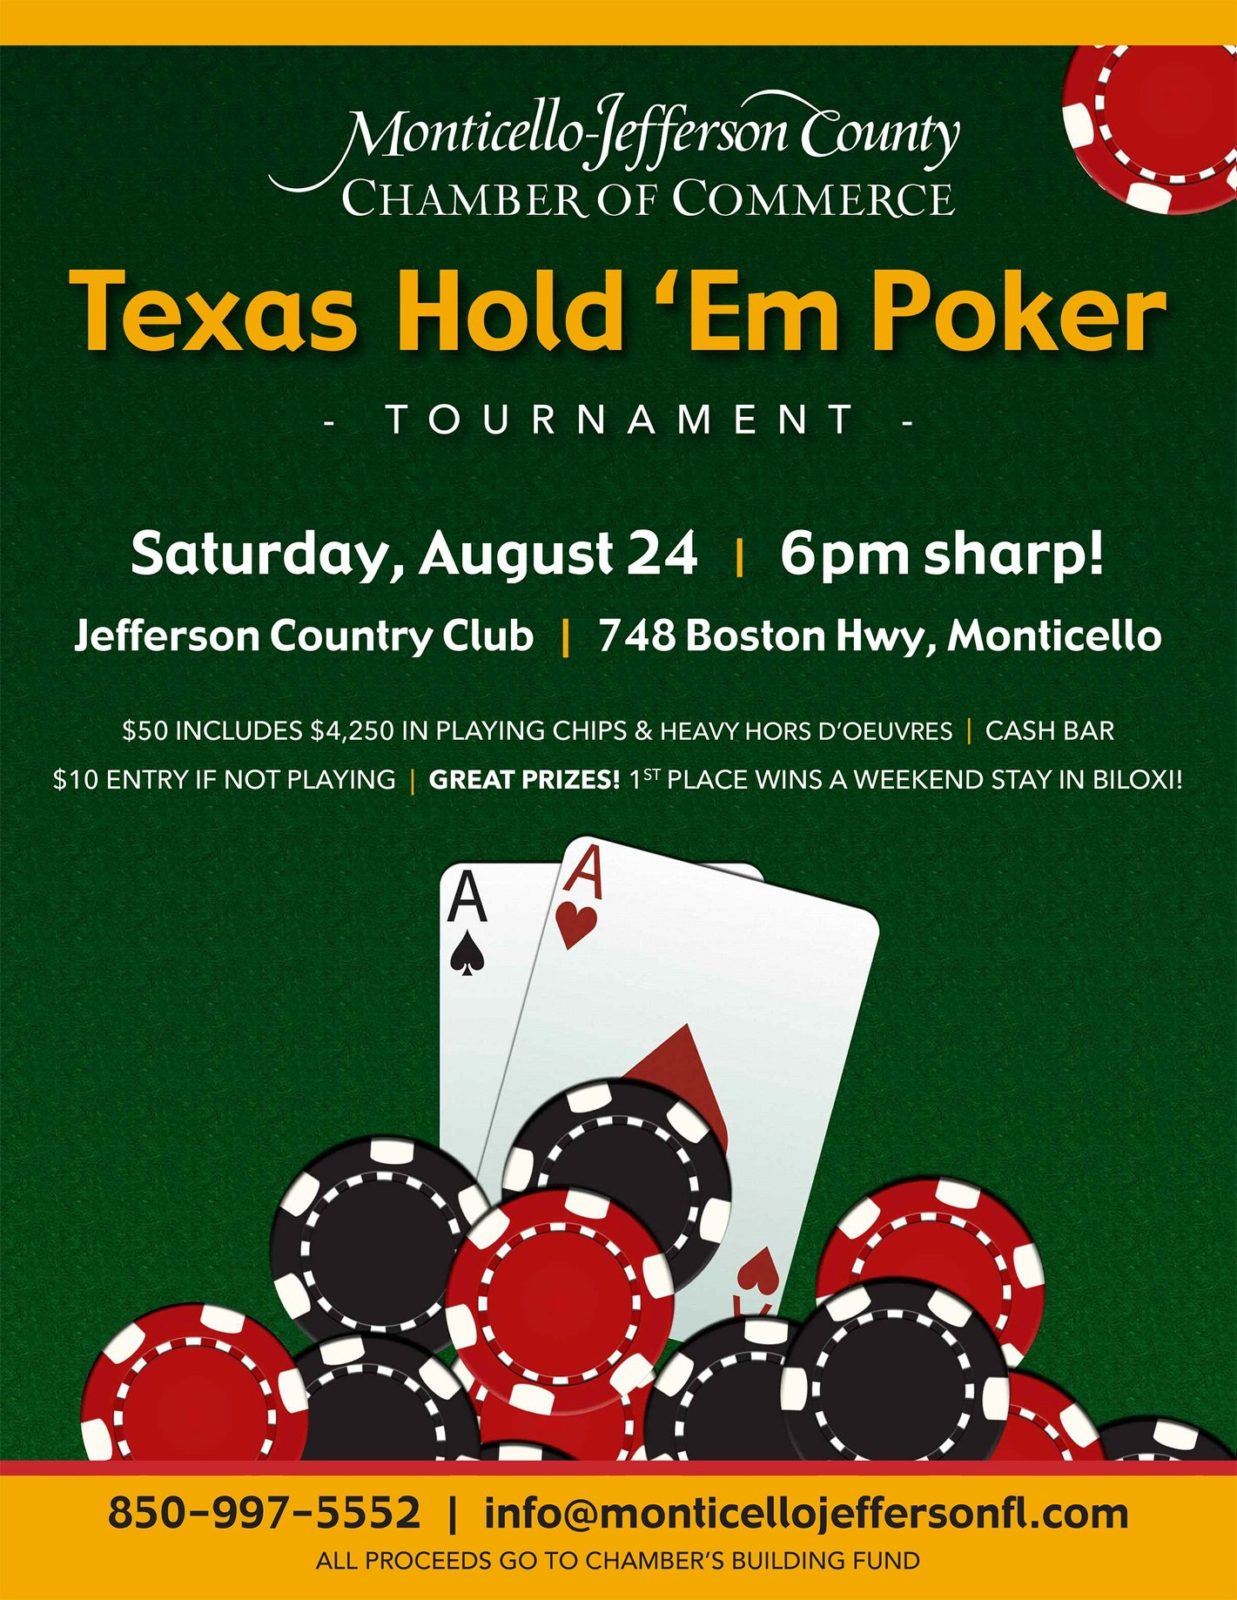 Poker Anyone?  Texas Hold 'Em Tournament, Monticello, Saturday, August 24th To Benefit Chamber Building Fund